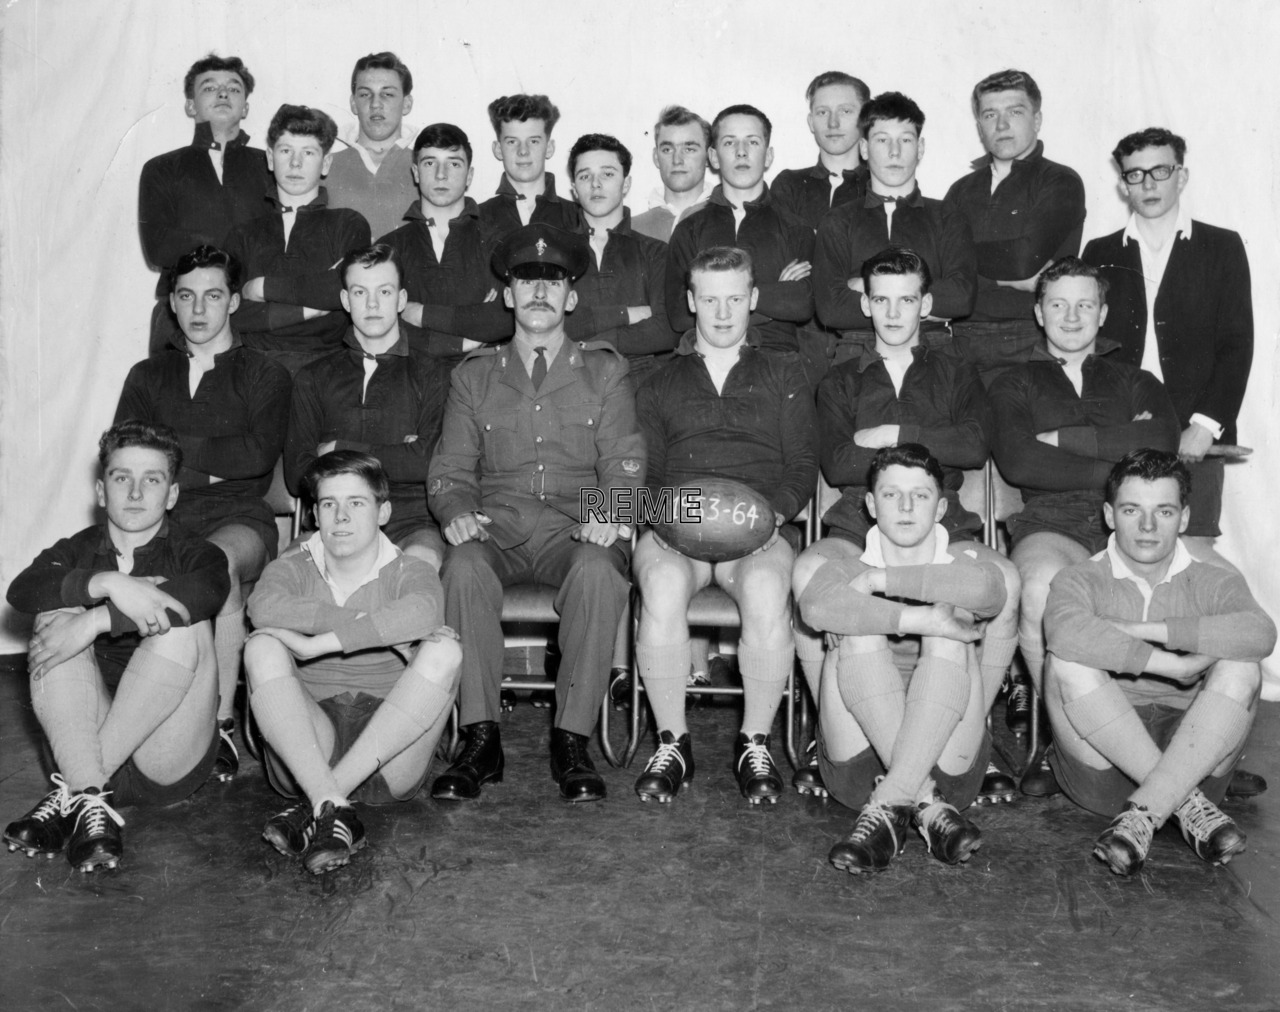 Junior Leaders' Unit, REME: Rugby Team January 1964